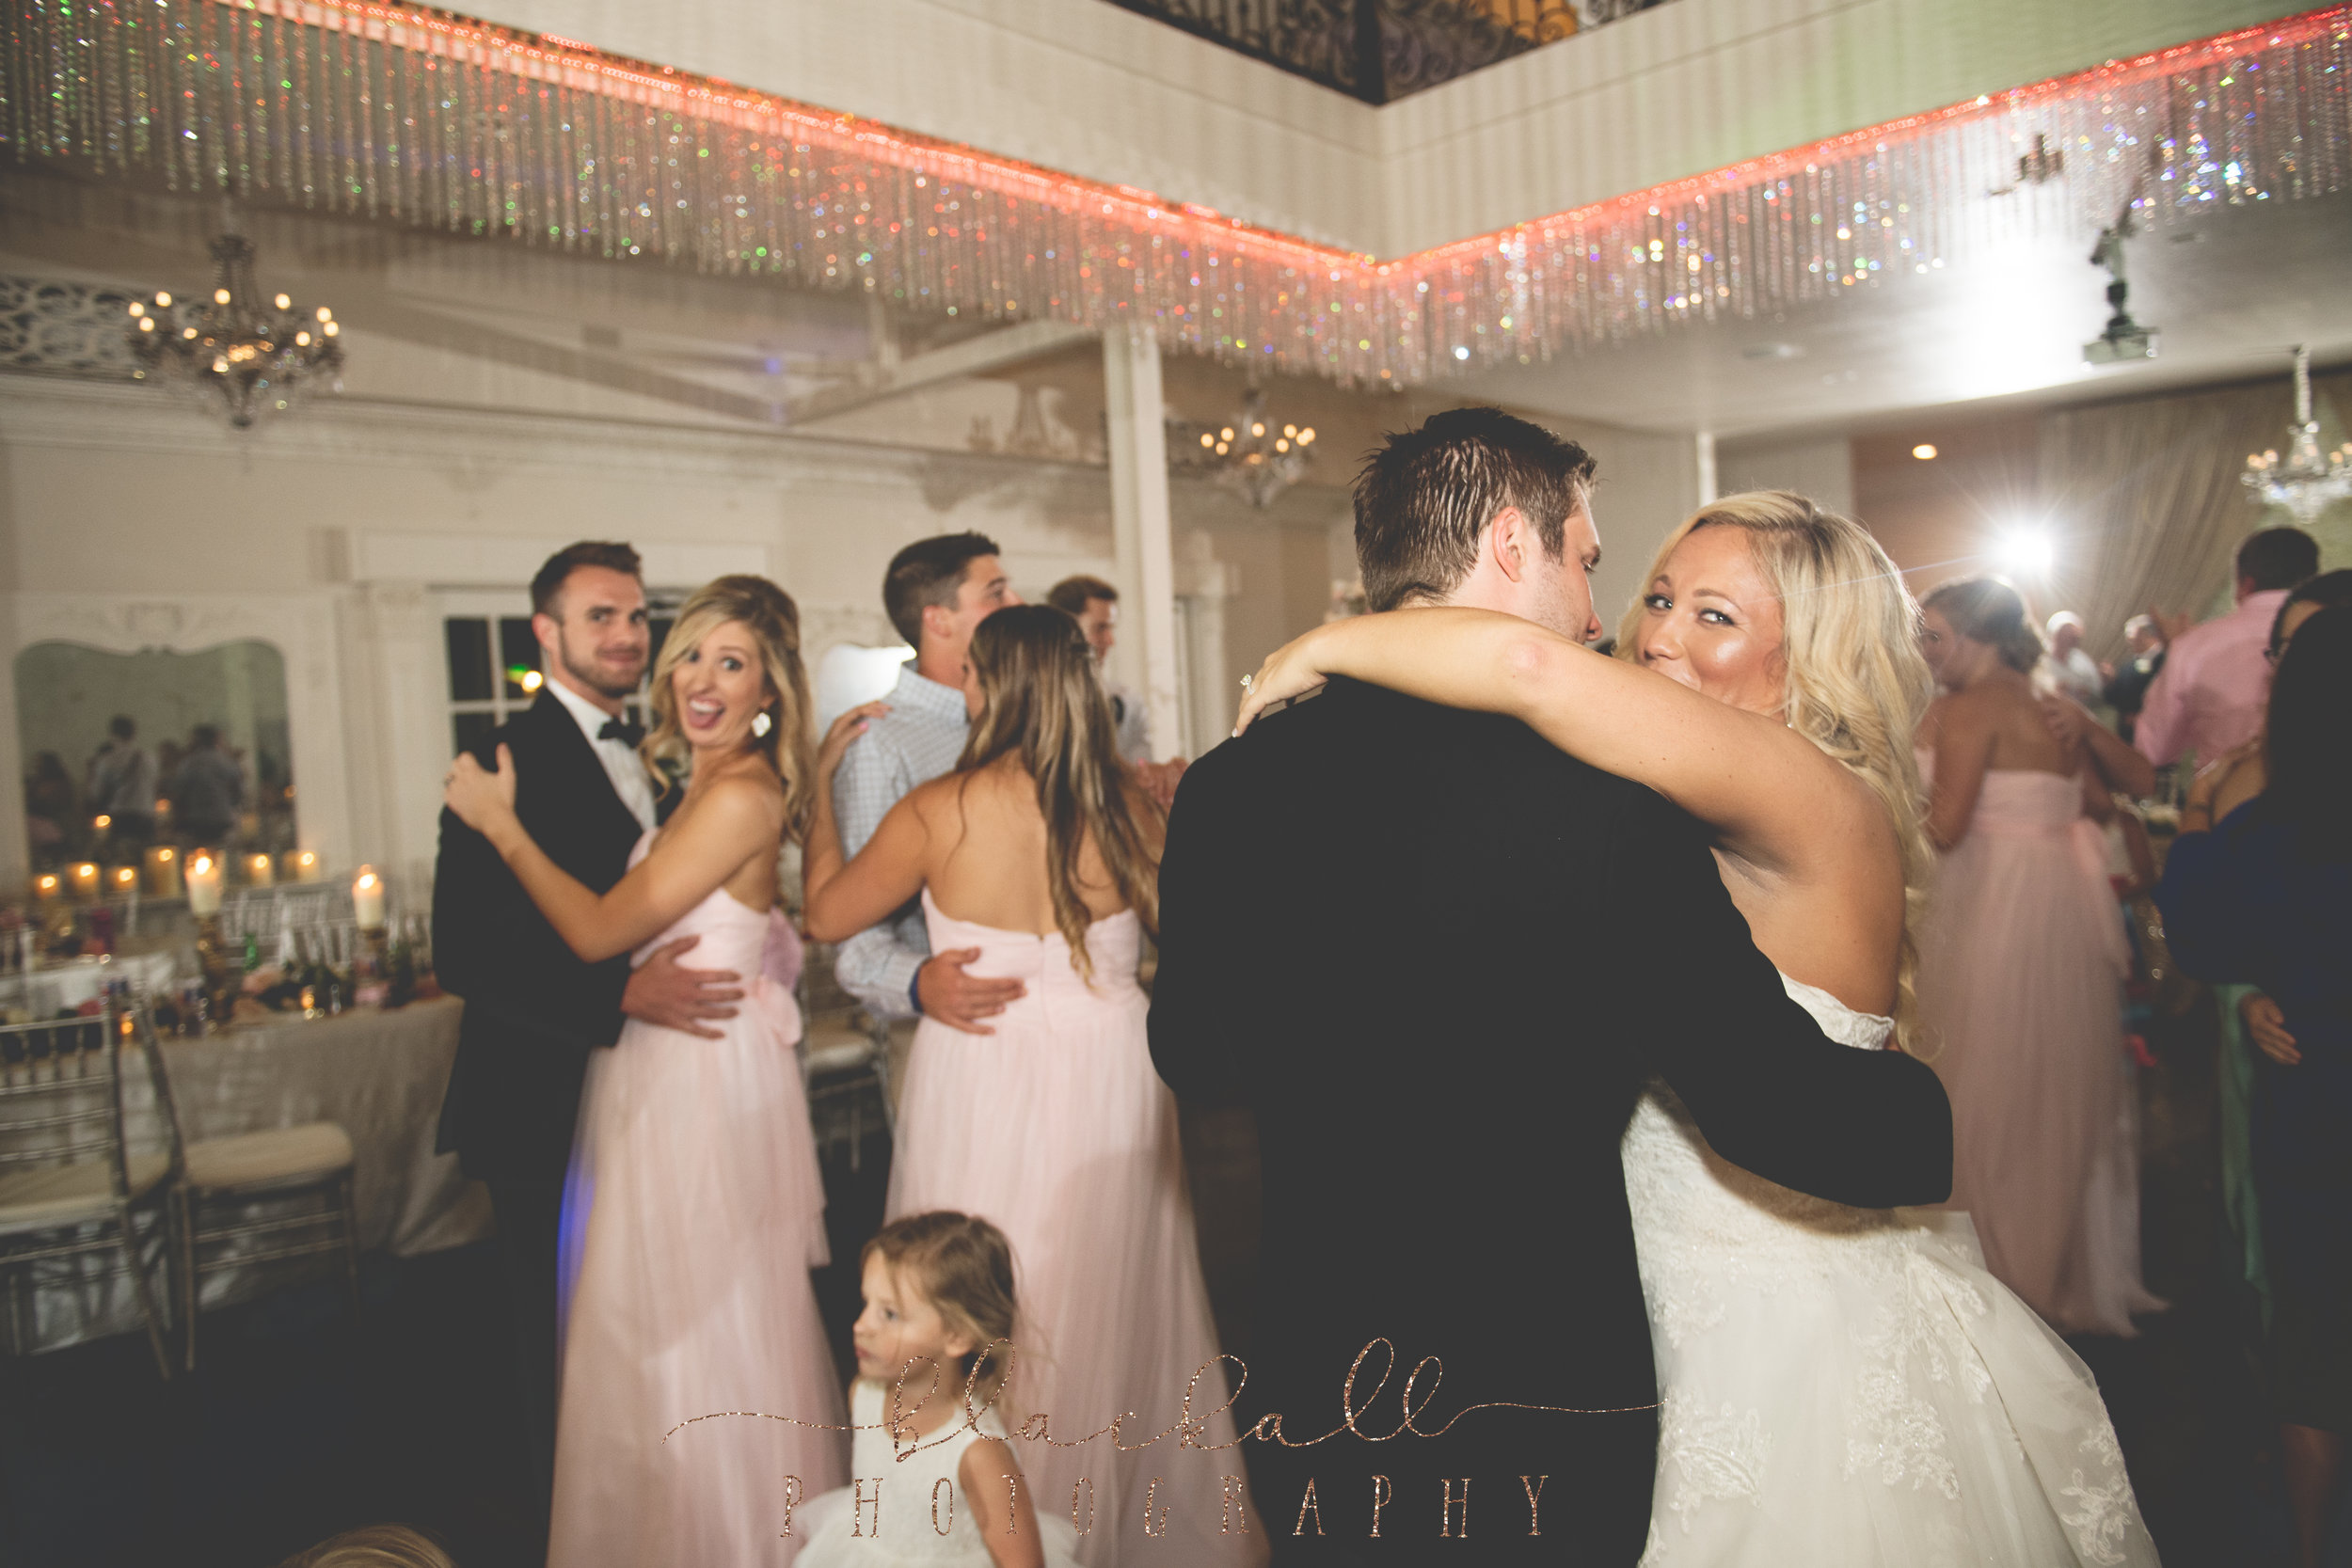 WEDDING_BlackallPhotography_59.JPG